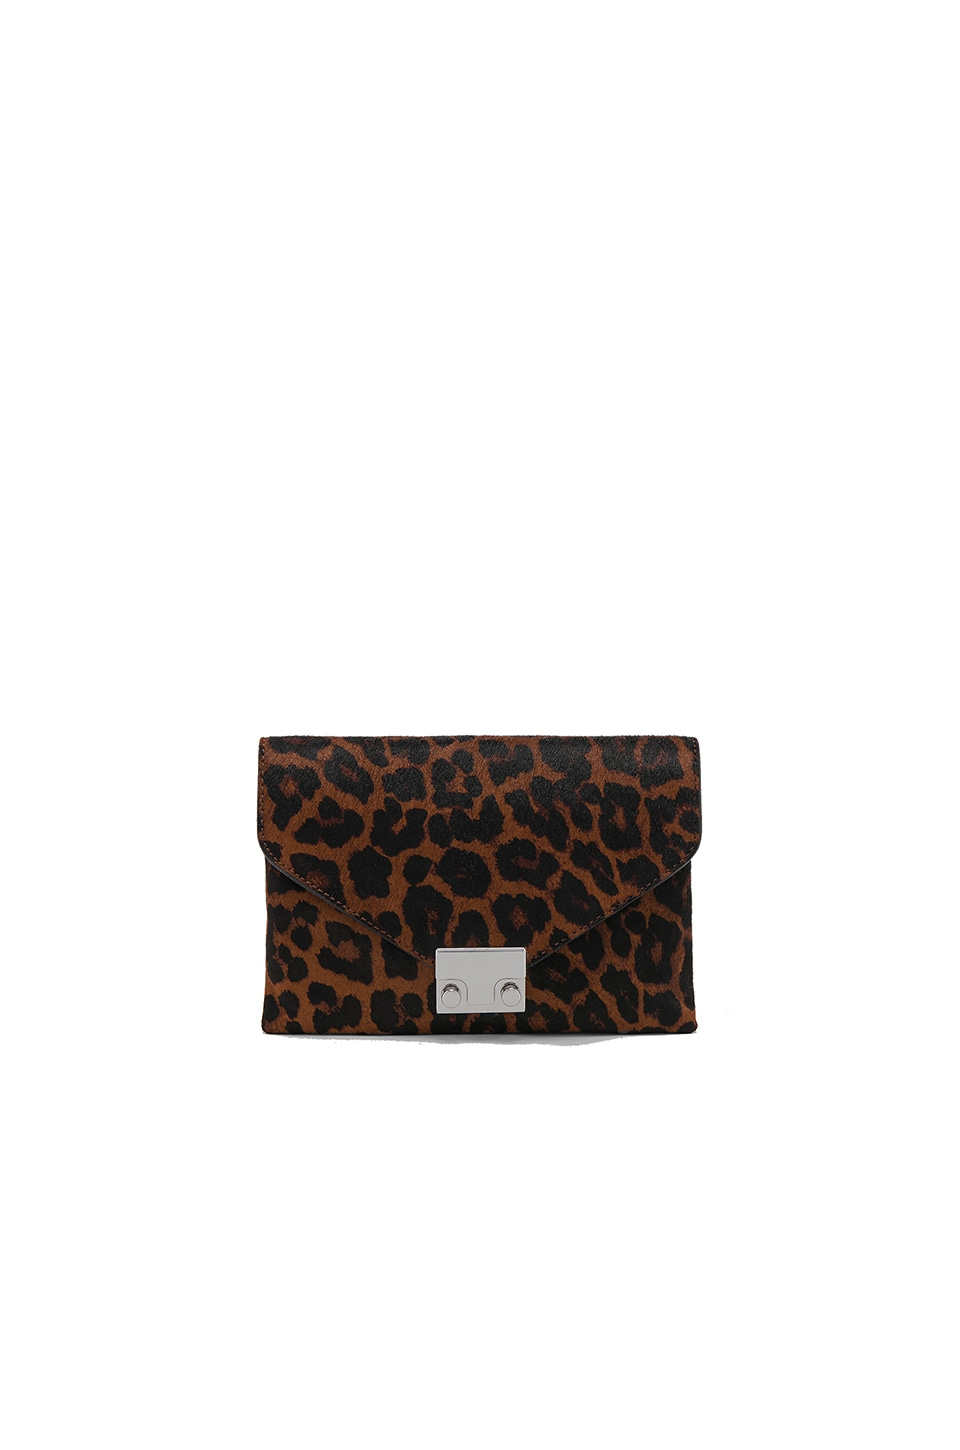 Loeffler Randall Jr Lock Calf Hair Clutch in Leopard